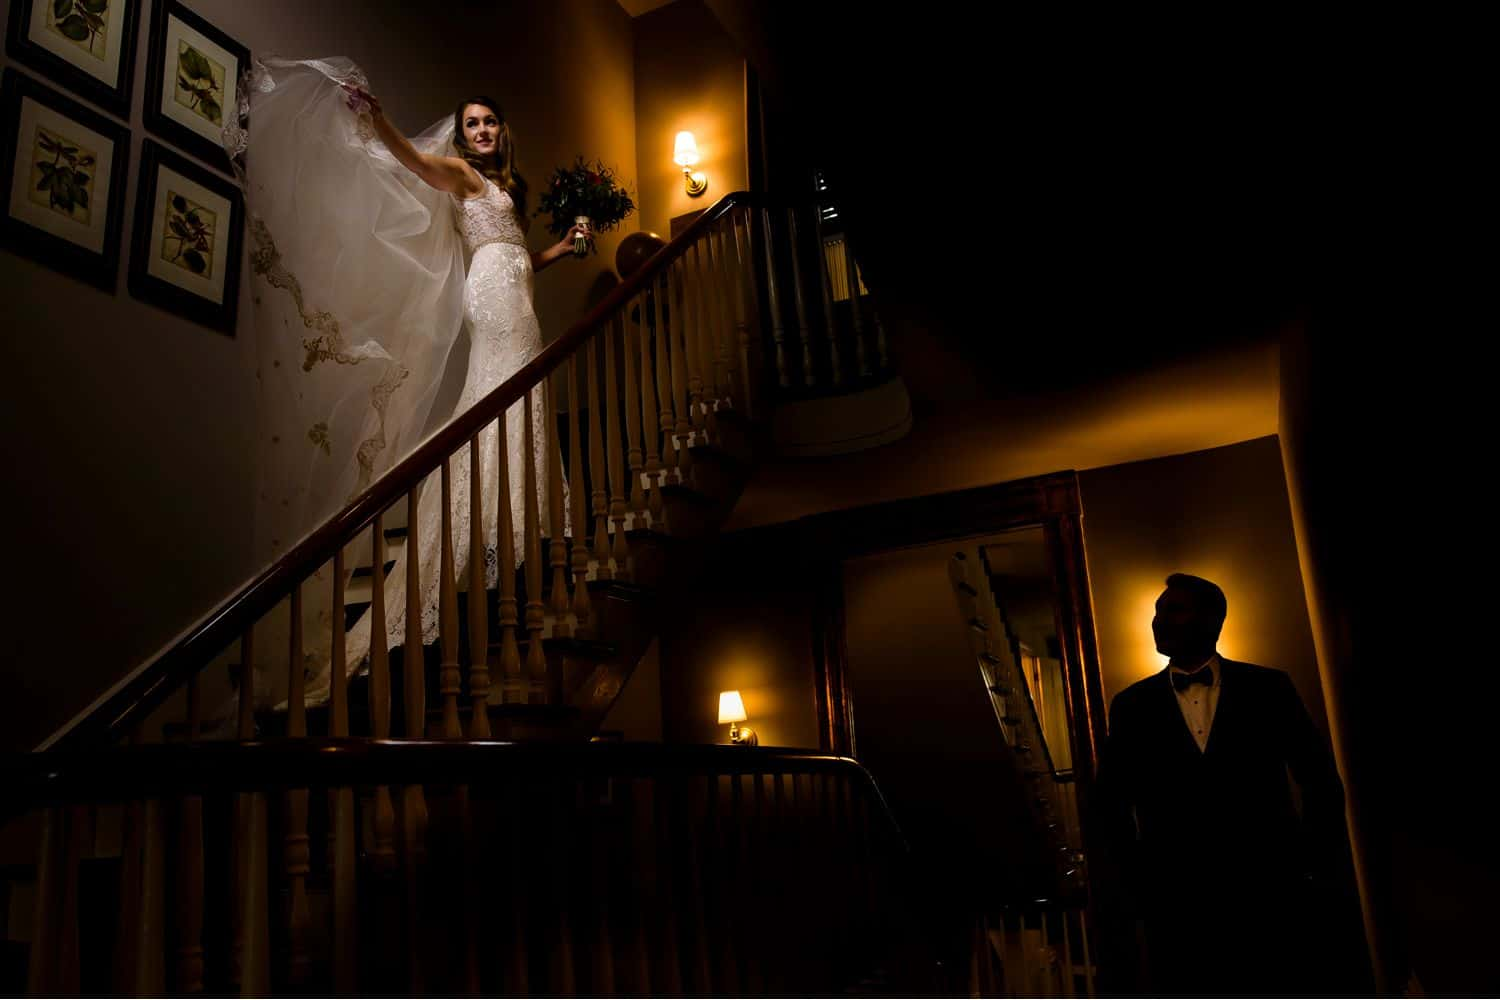 Make Money with Photography: bride stands on stairs with veil flowing while groom stands below illuminated from behind